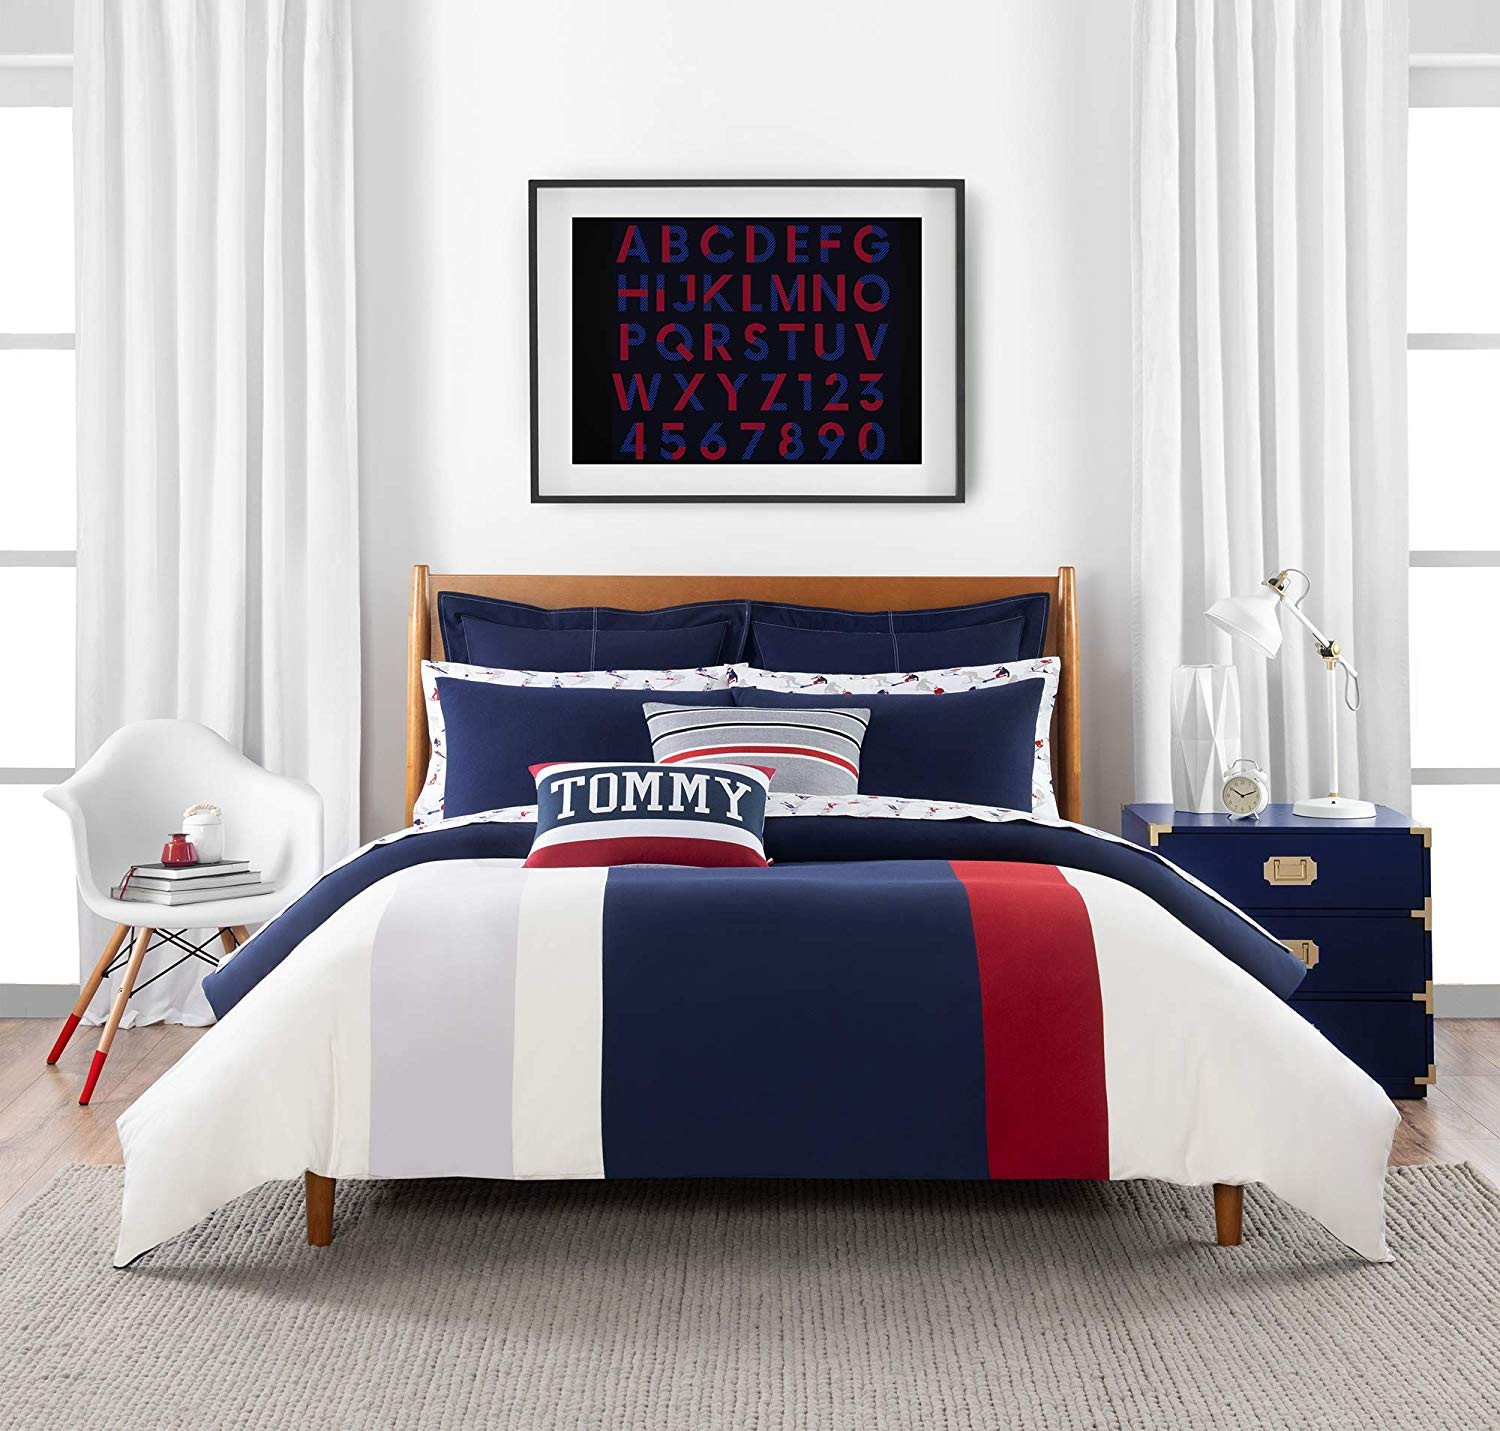 Good Size Tv for Bedroom Best Of Amazon tommy Hilfiger Clash Of 85 Stripe Bedding